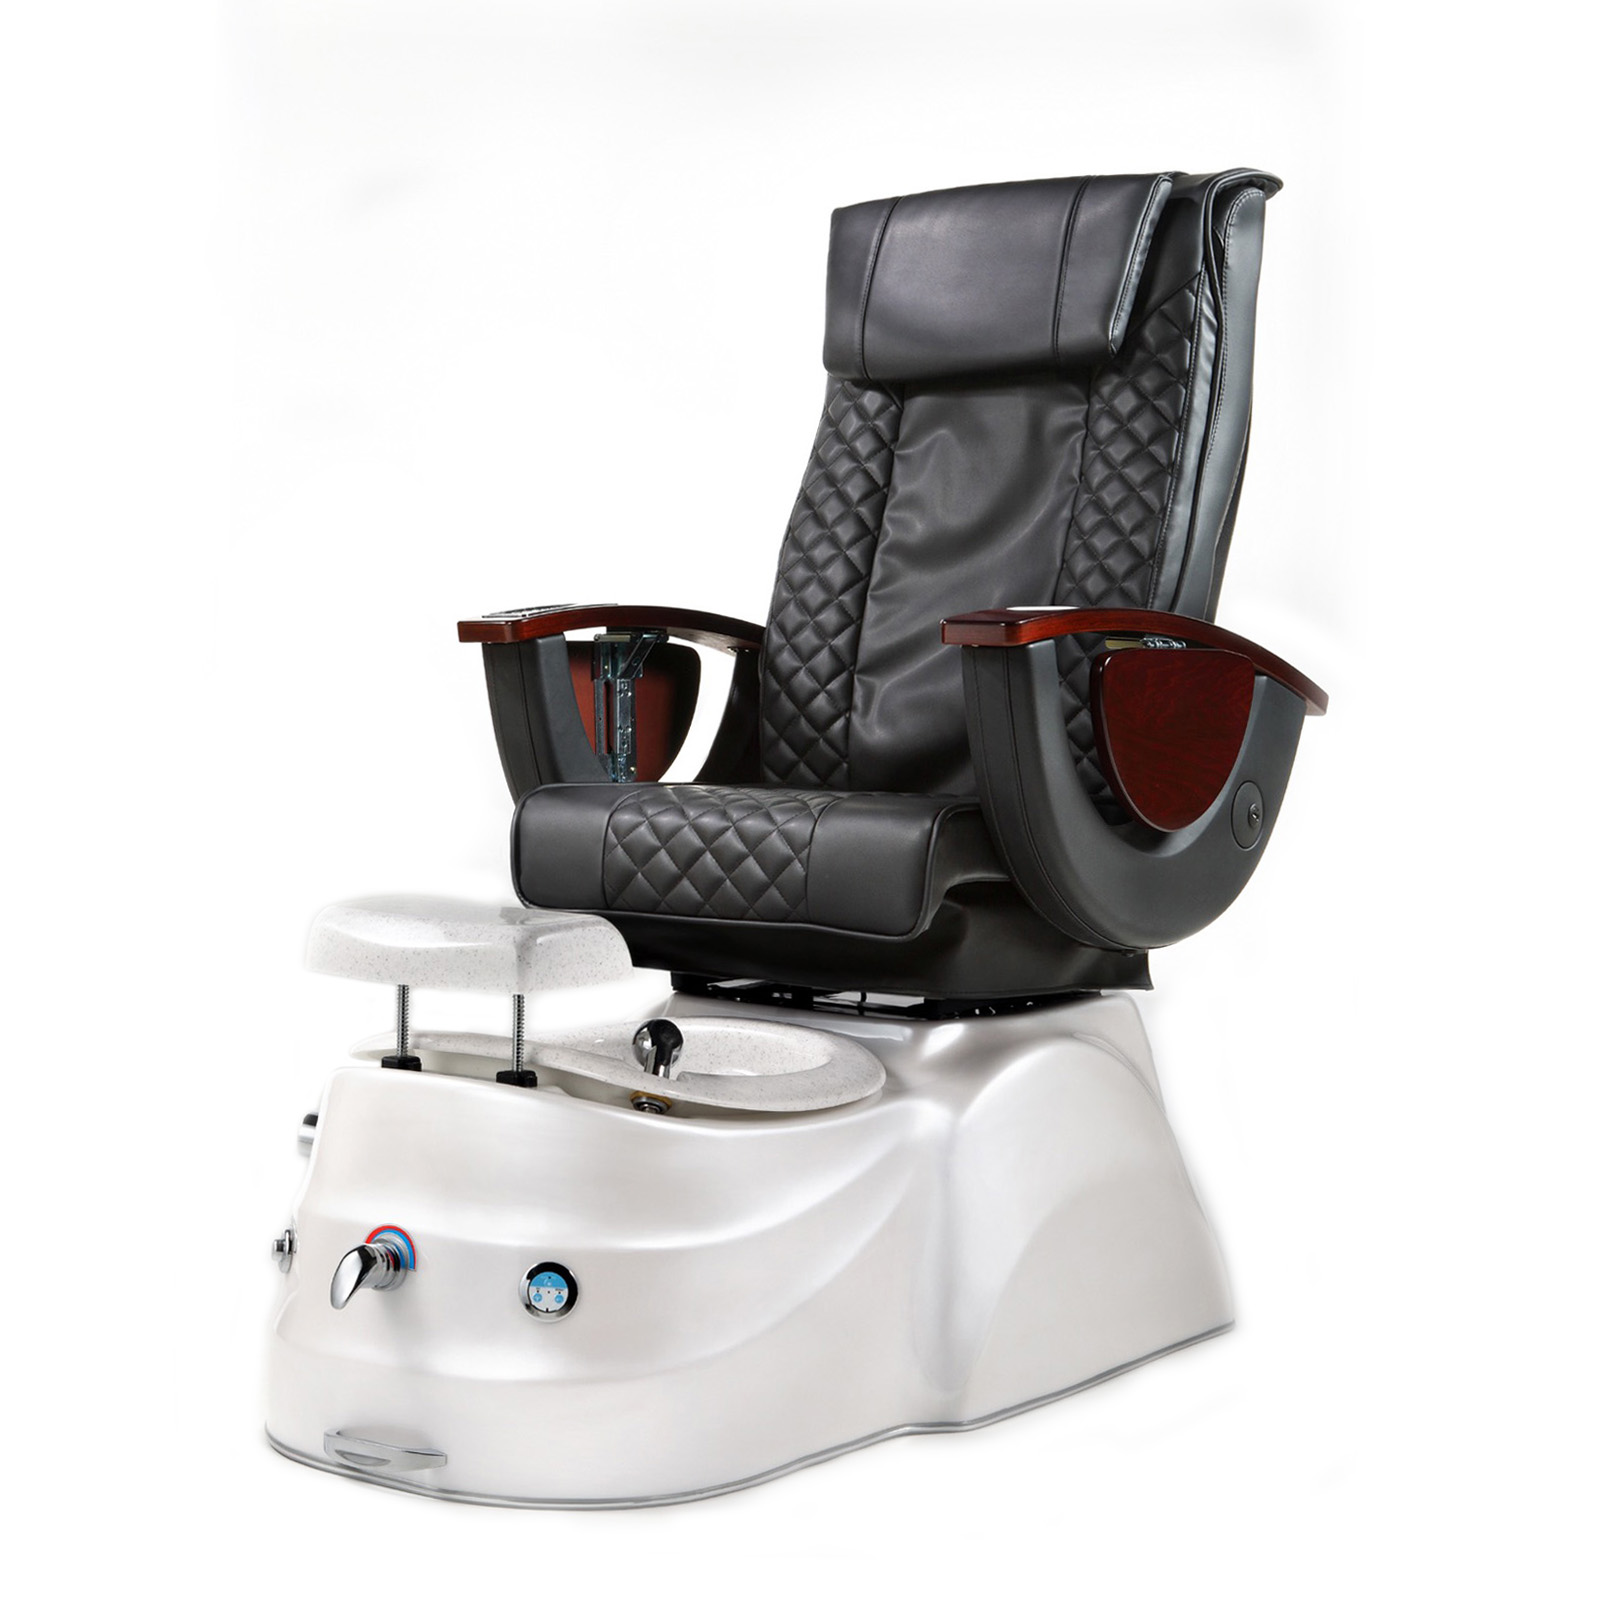 iRrelax 2020 Spa Pedicure Chair - Md002